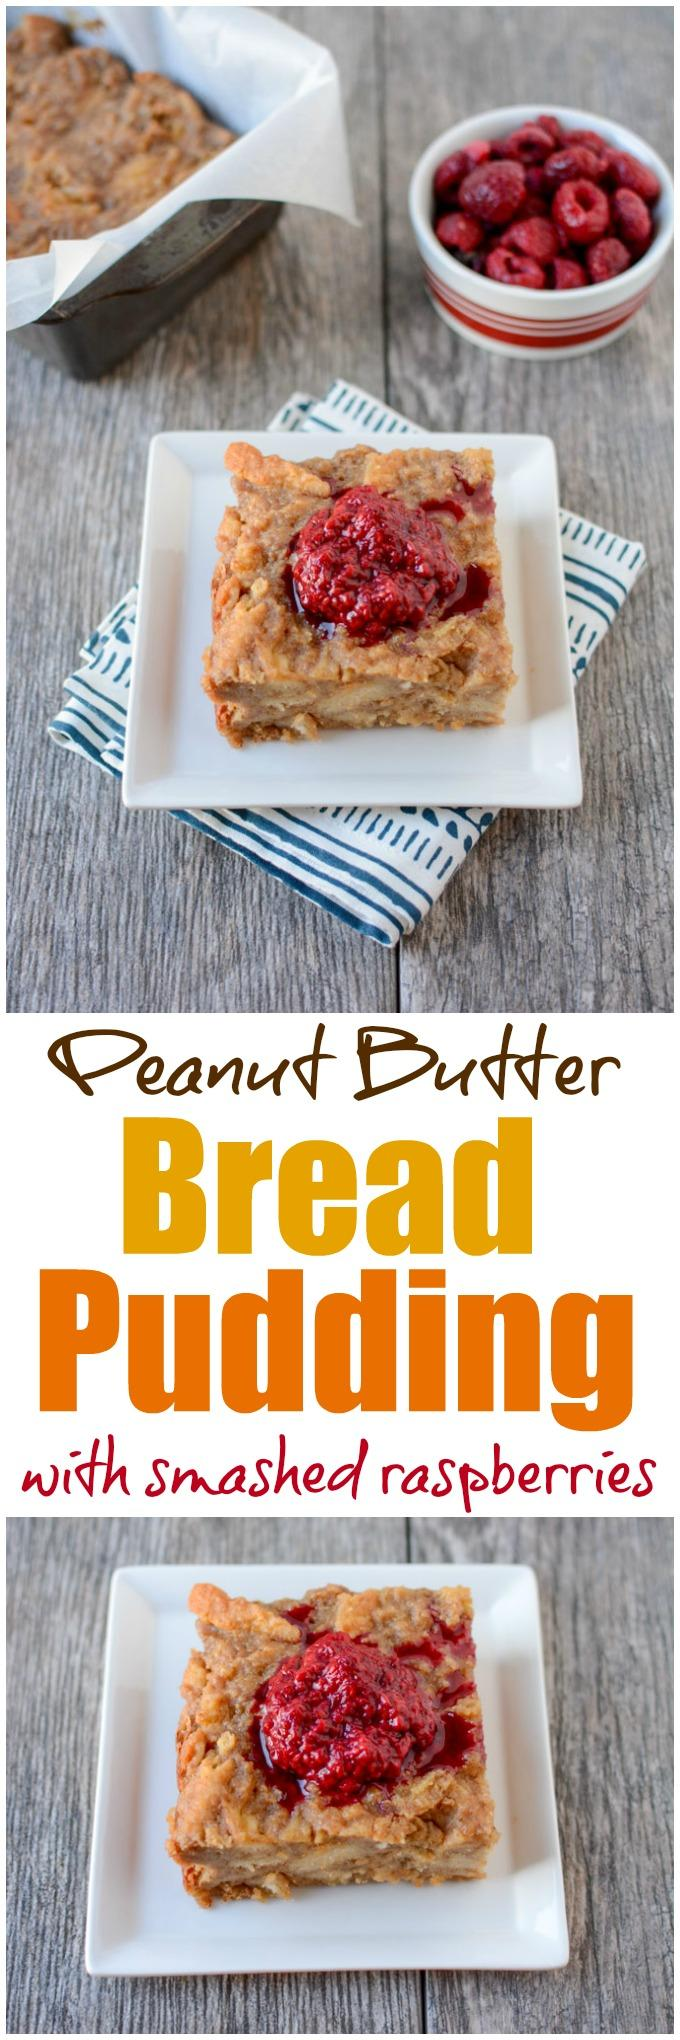 This recipe for a small batch of Peanut Butter Bread Pudding is perfect for dessert! Top with smashed raspberries for added sweetness.